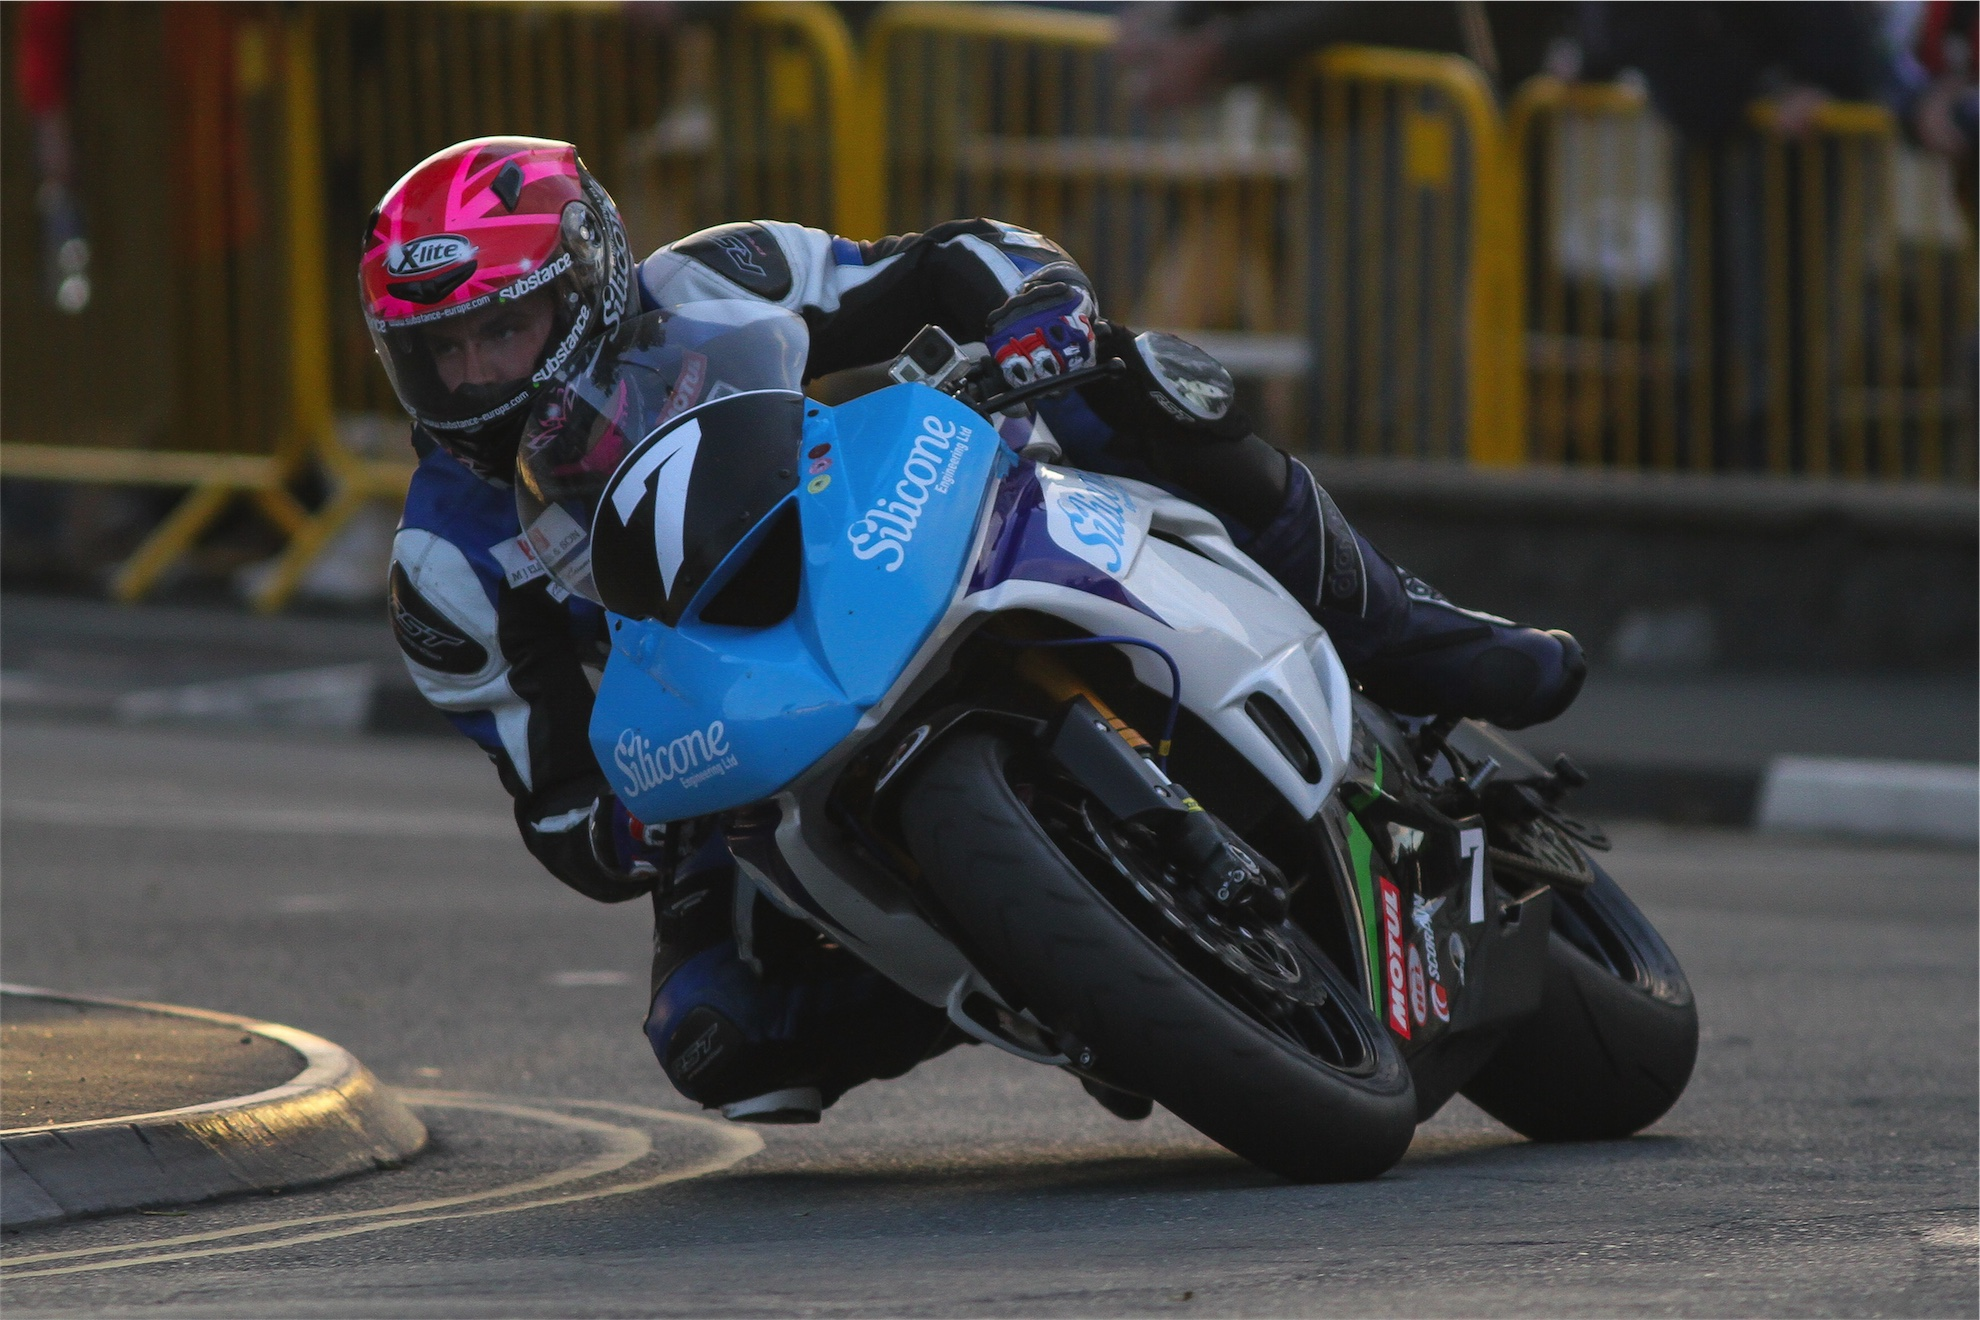 Manx Grand Prix 2015 – Saturday Practice Report